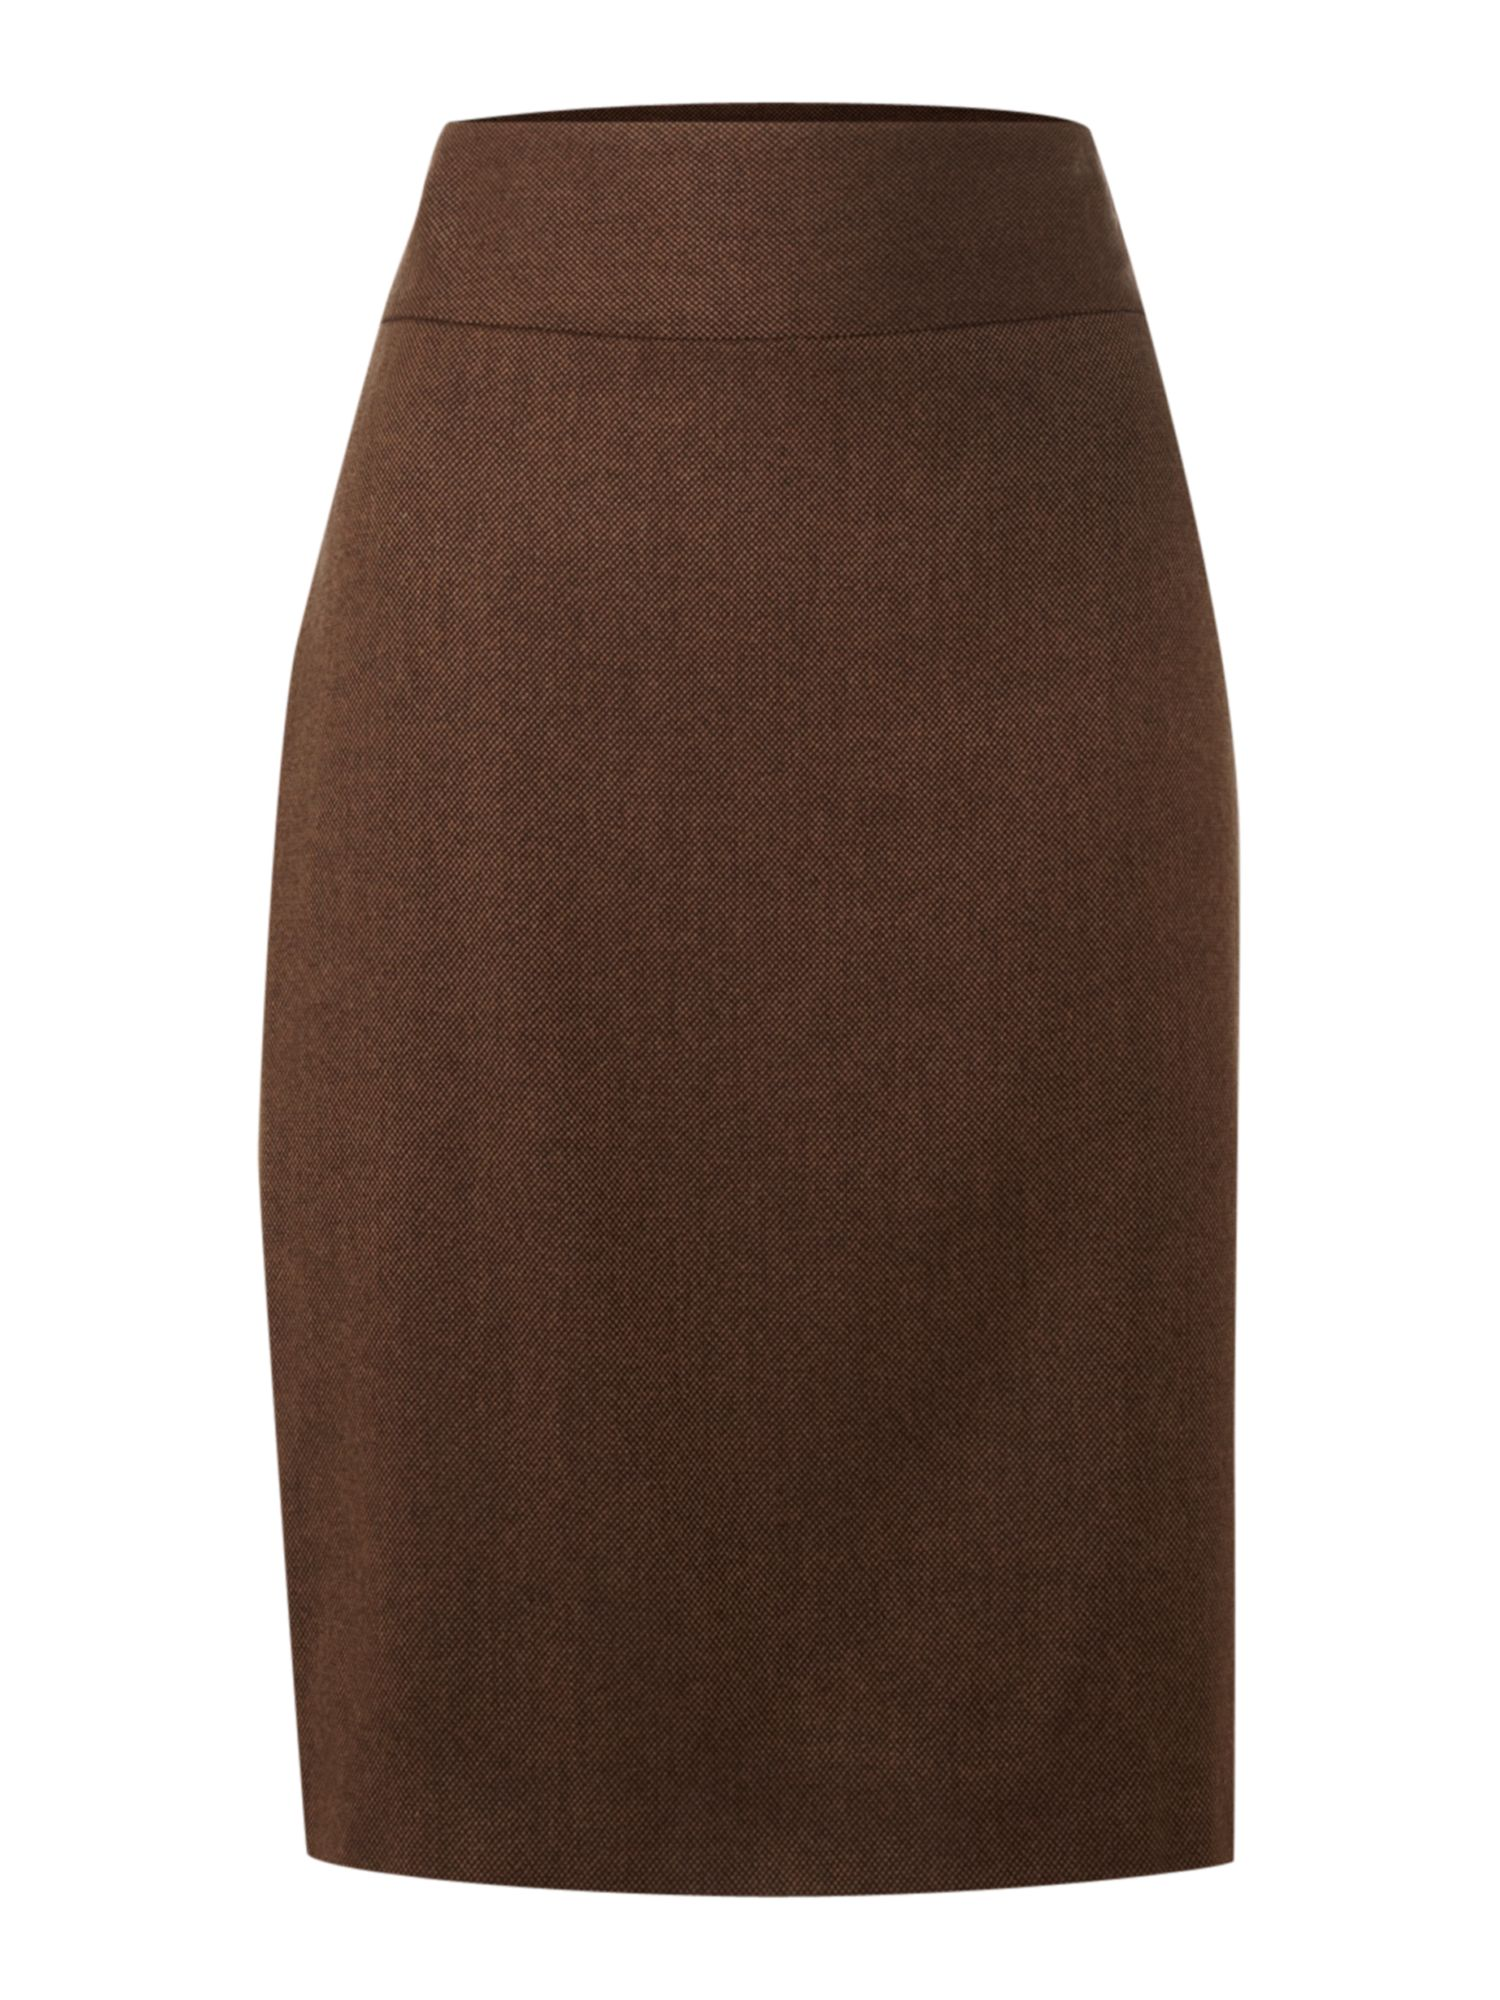 Images of Brown Skirt - Watch Out, There's a Clothes About